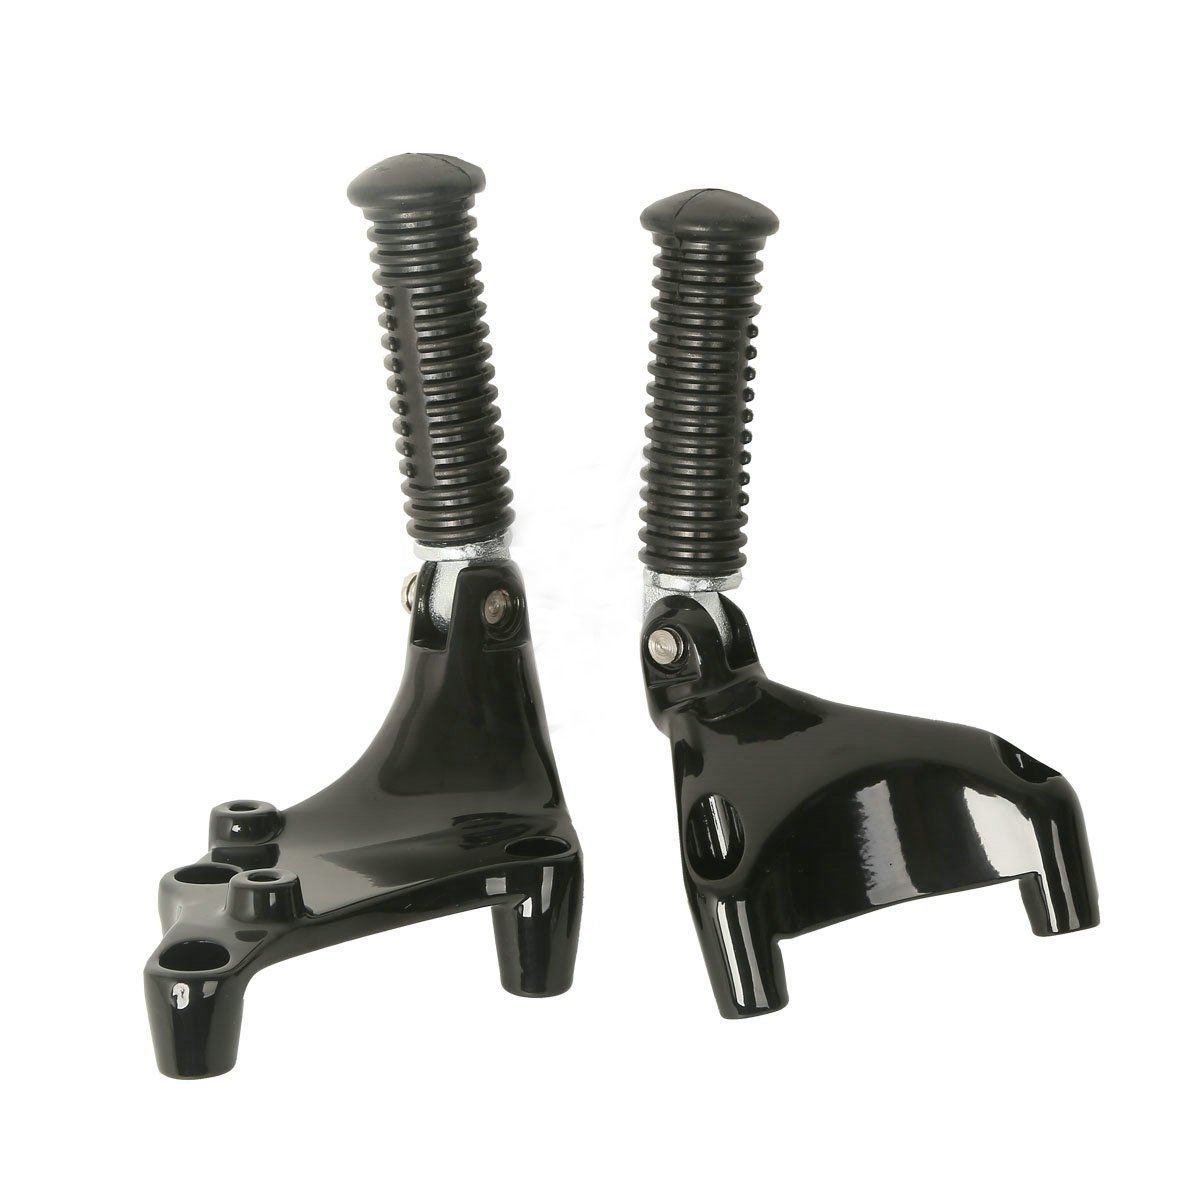 XFMT Rear Passenger Foot Peg Foot Rests Pedal /& Mount Compatible with Harley Sportster IRON XL 883 1200 48 72 2014-2019